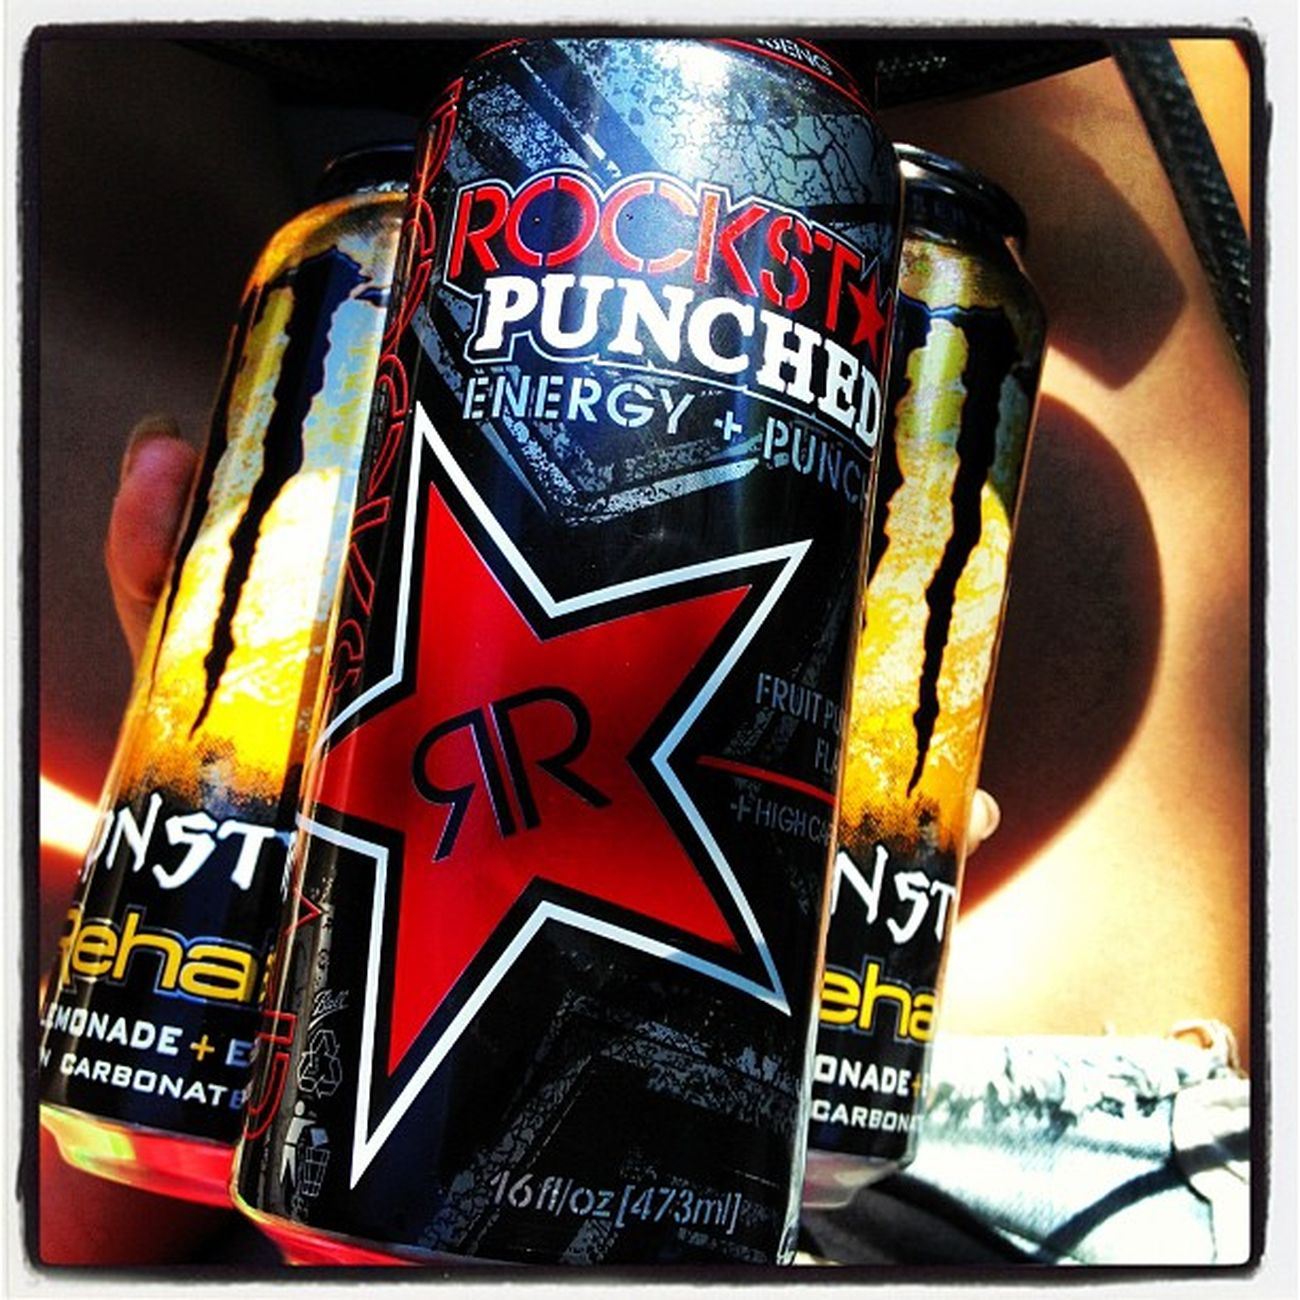 Malfunction, Error, Overload @monsterenergy Monster Rehab Rockstar Timetostudy overboard inneedofenergy myfaves